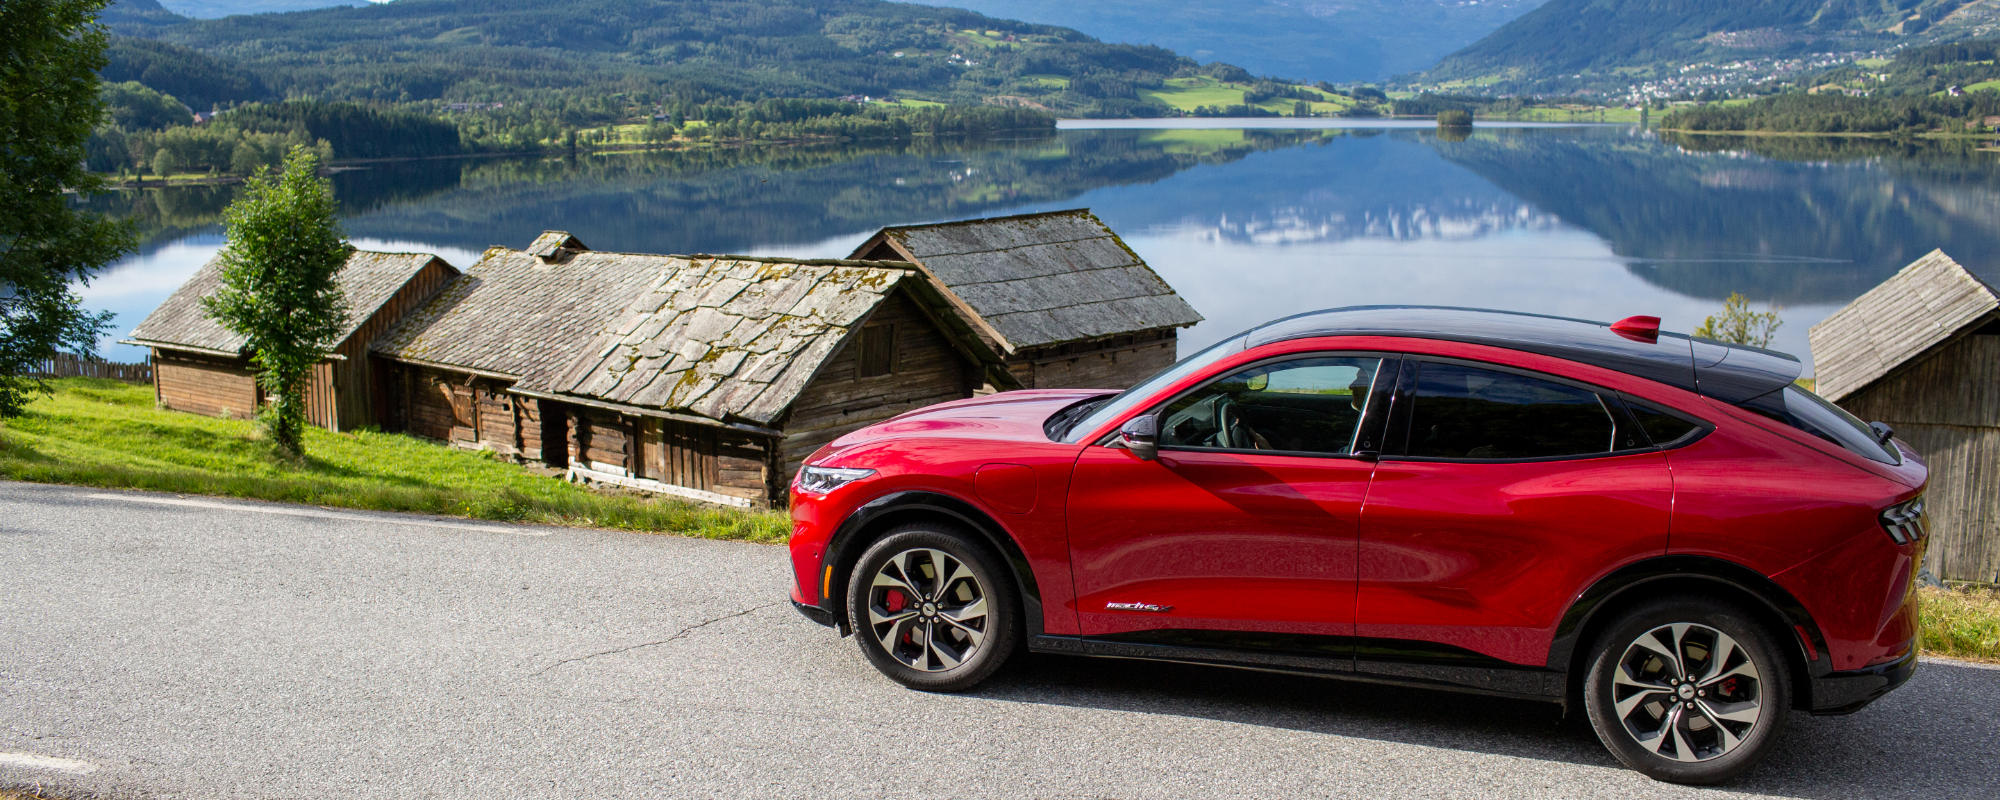 Mustang Mach-E i Norge